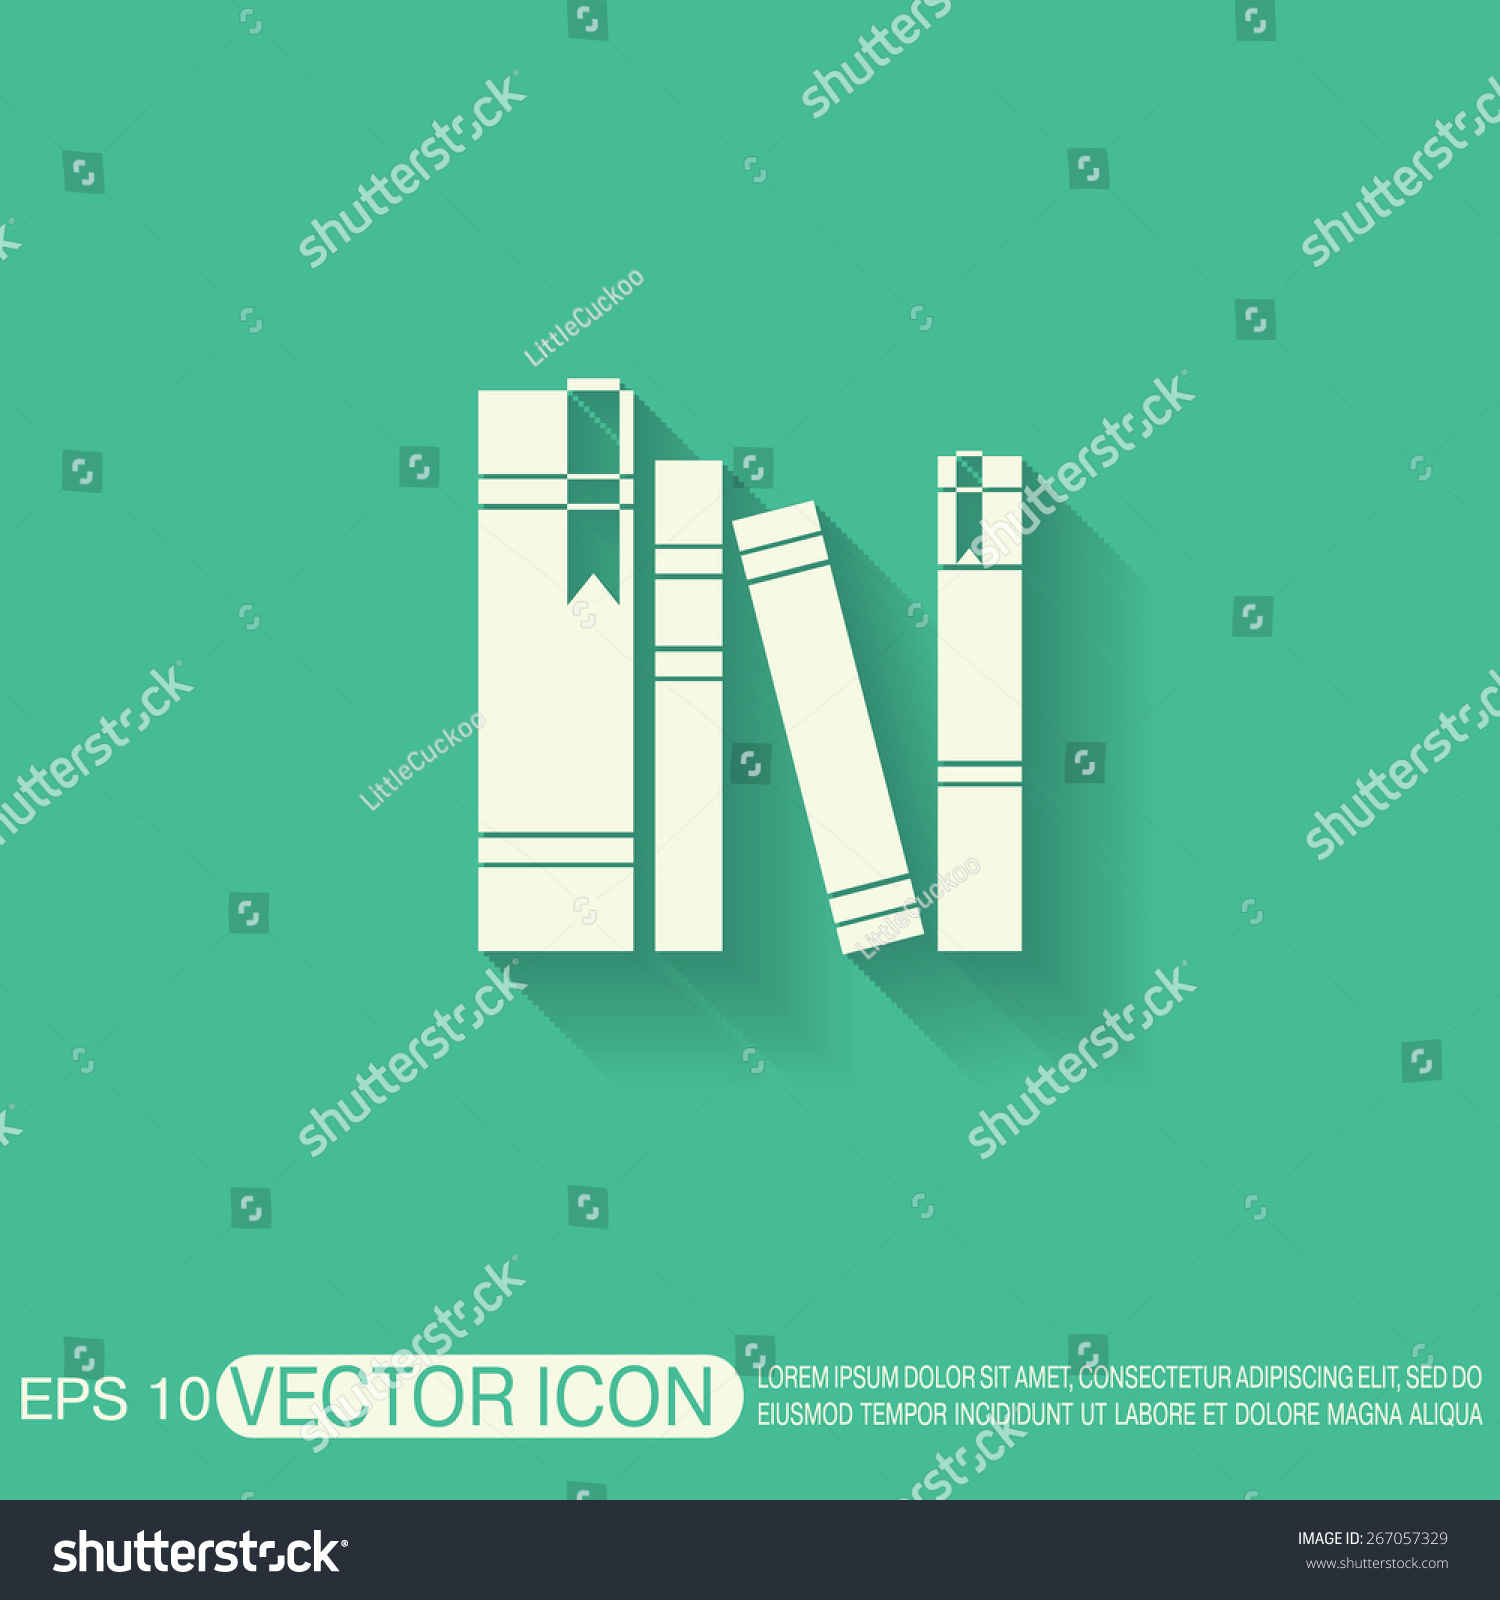 Symbol of literature a symbol in literature animal symbolism in a symbol in literature book spine spines books icon symbol stock vector taoism symbols taoism2007 biocorpaavc Gallery